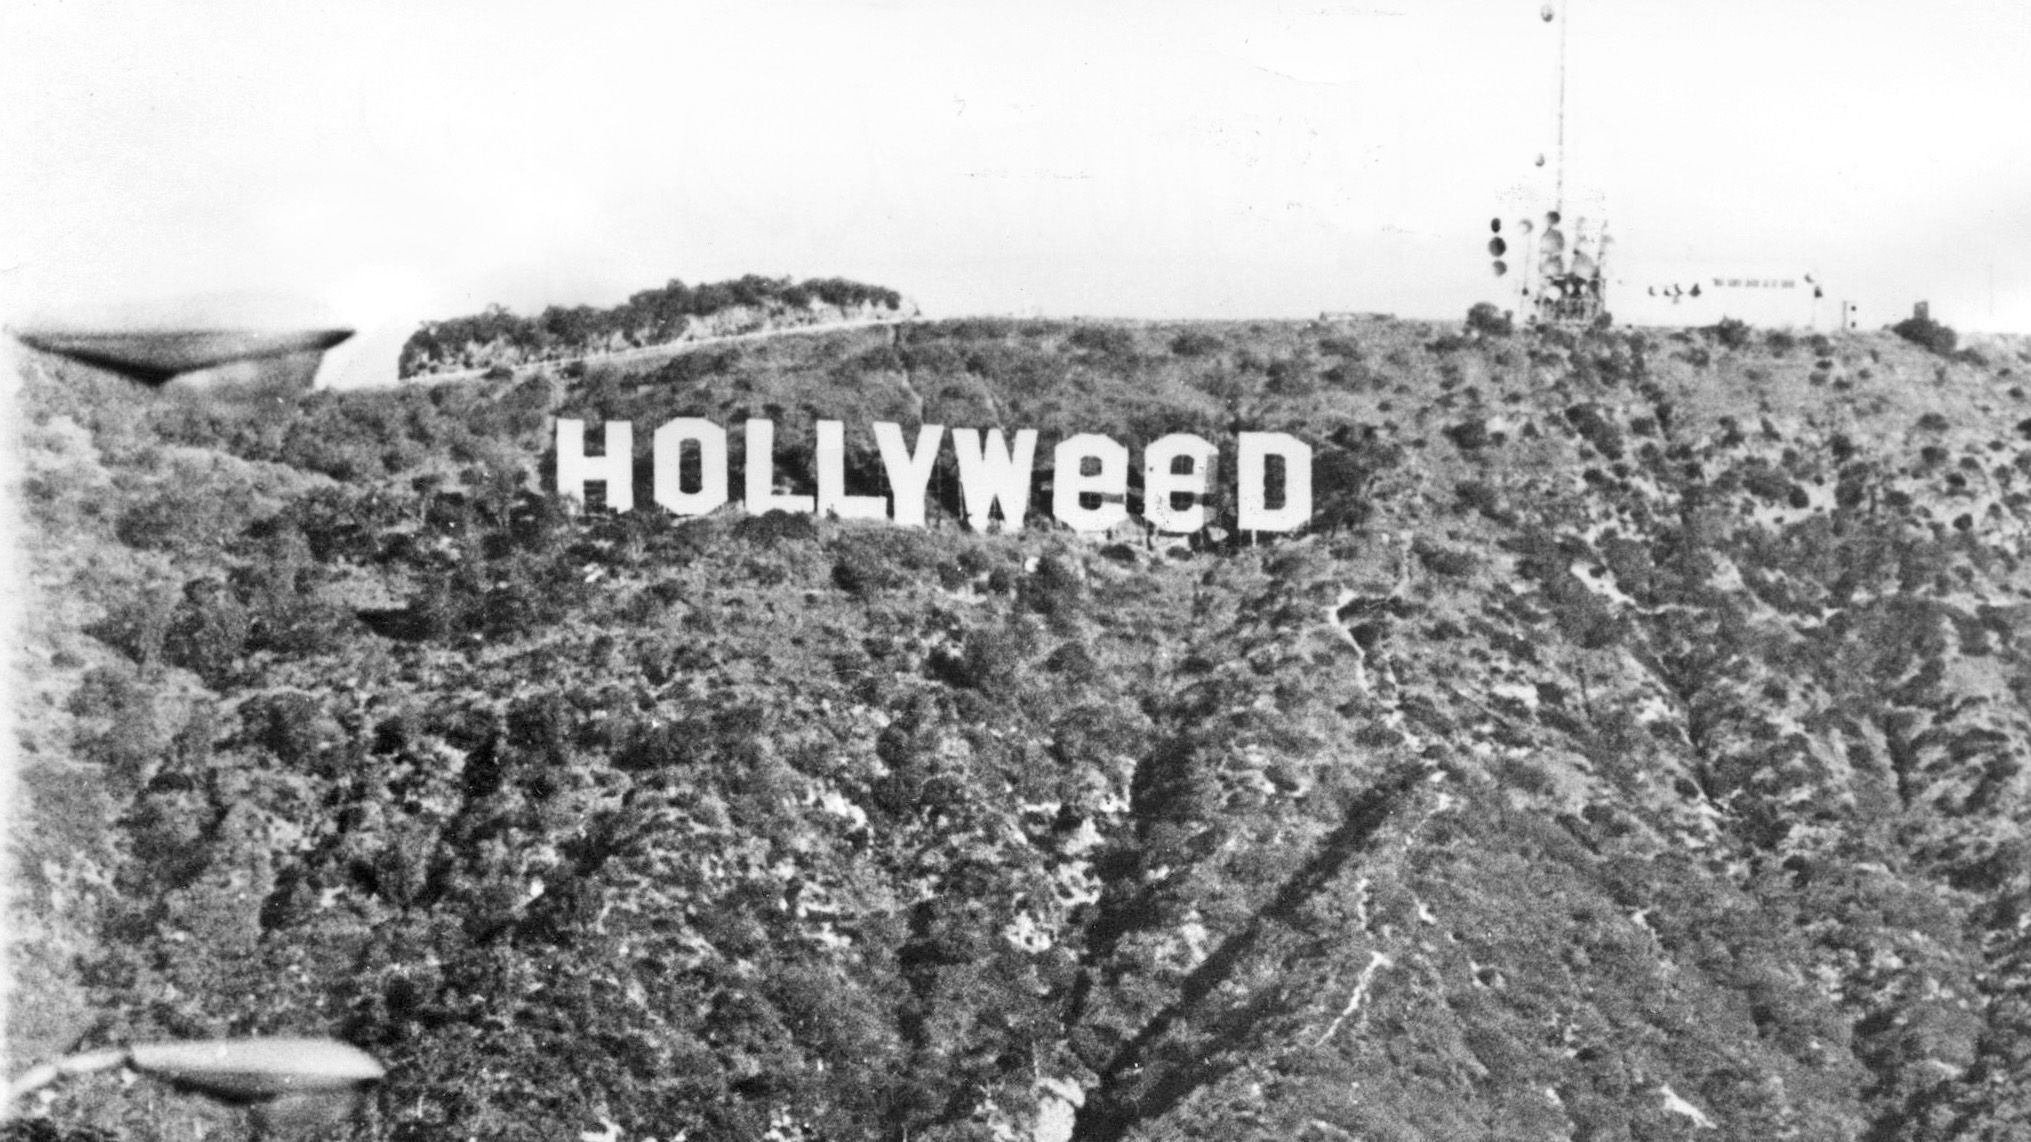 The Hollywood sign's first iternation as